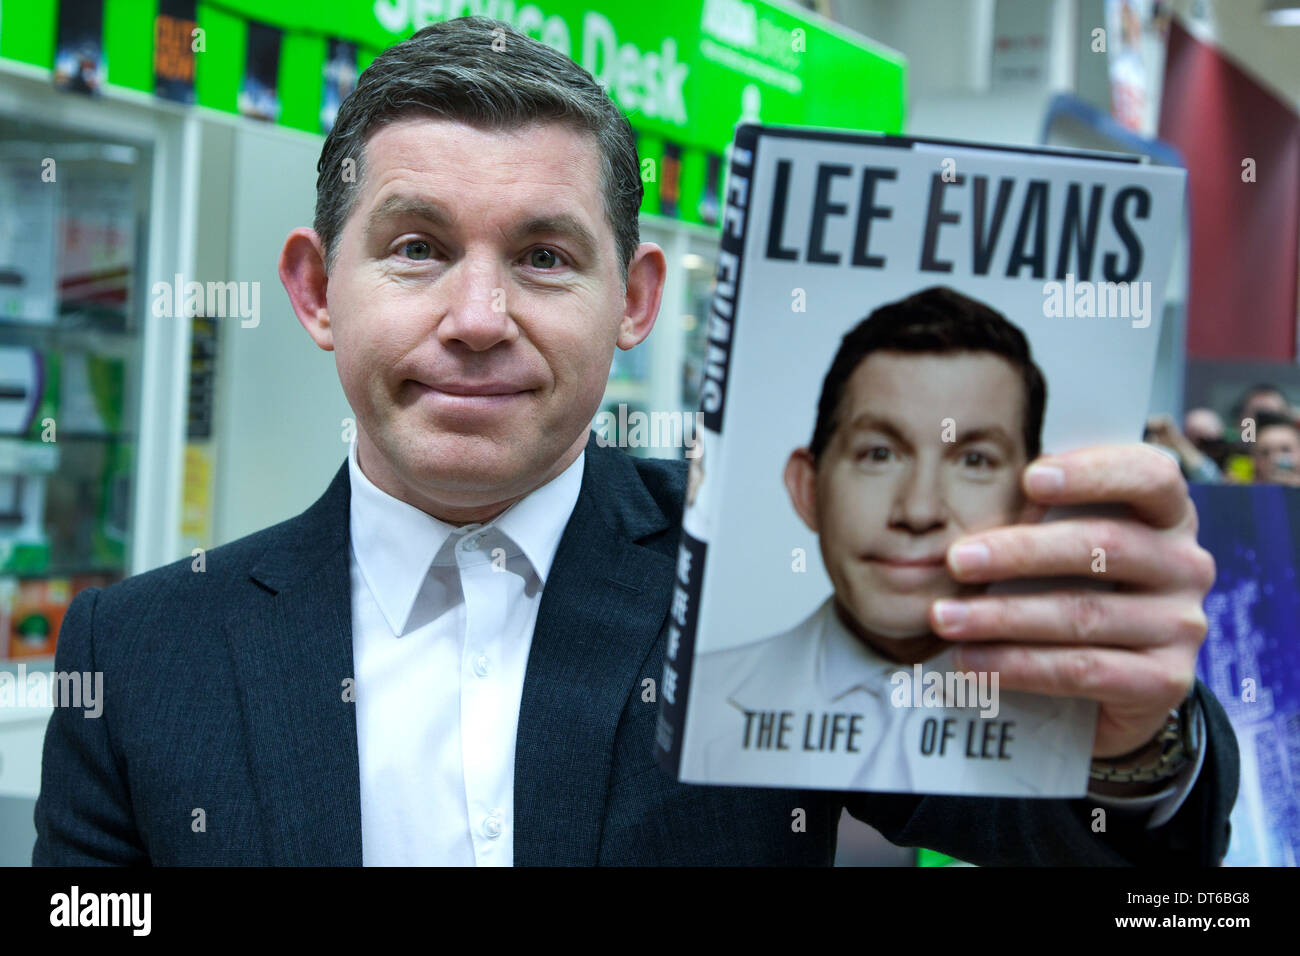 Lee Evan Comedian and Entertainer Asda Derby - Stock Image